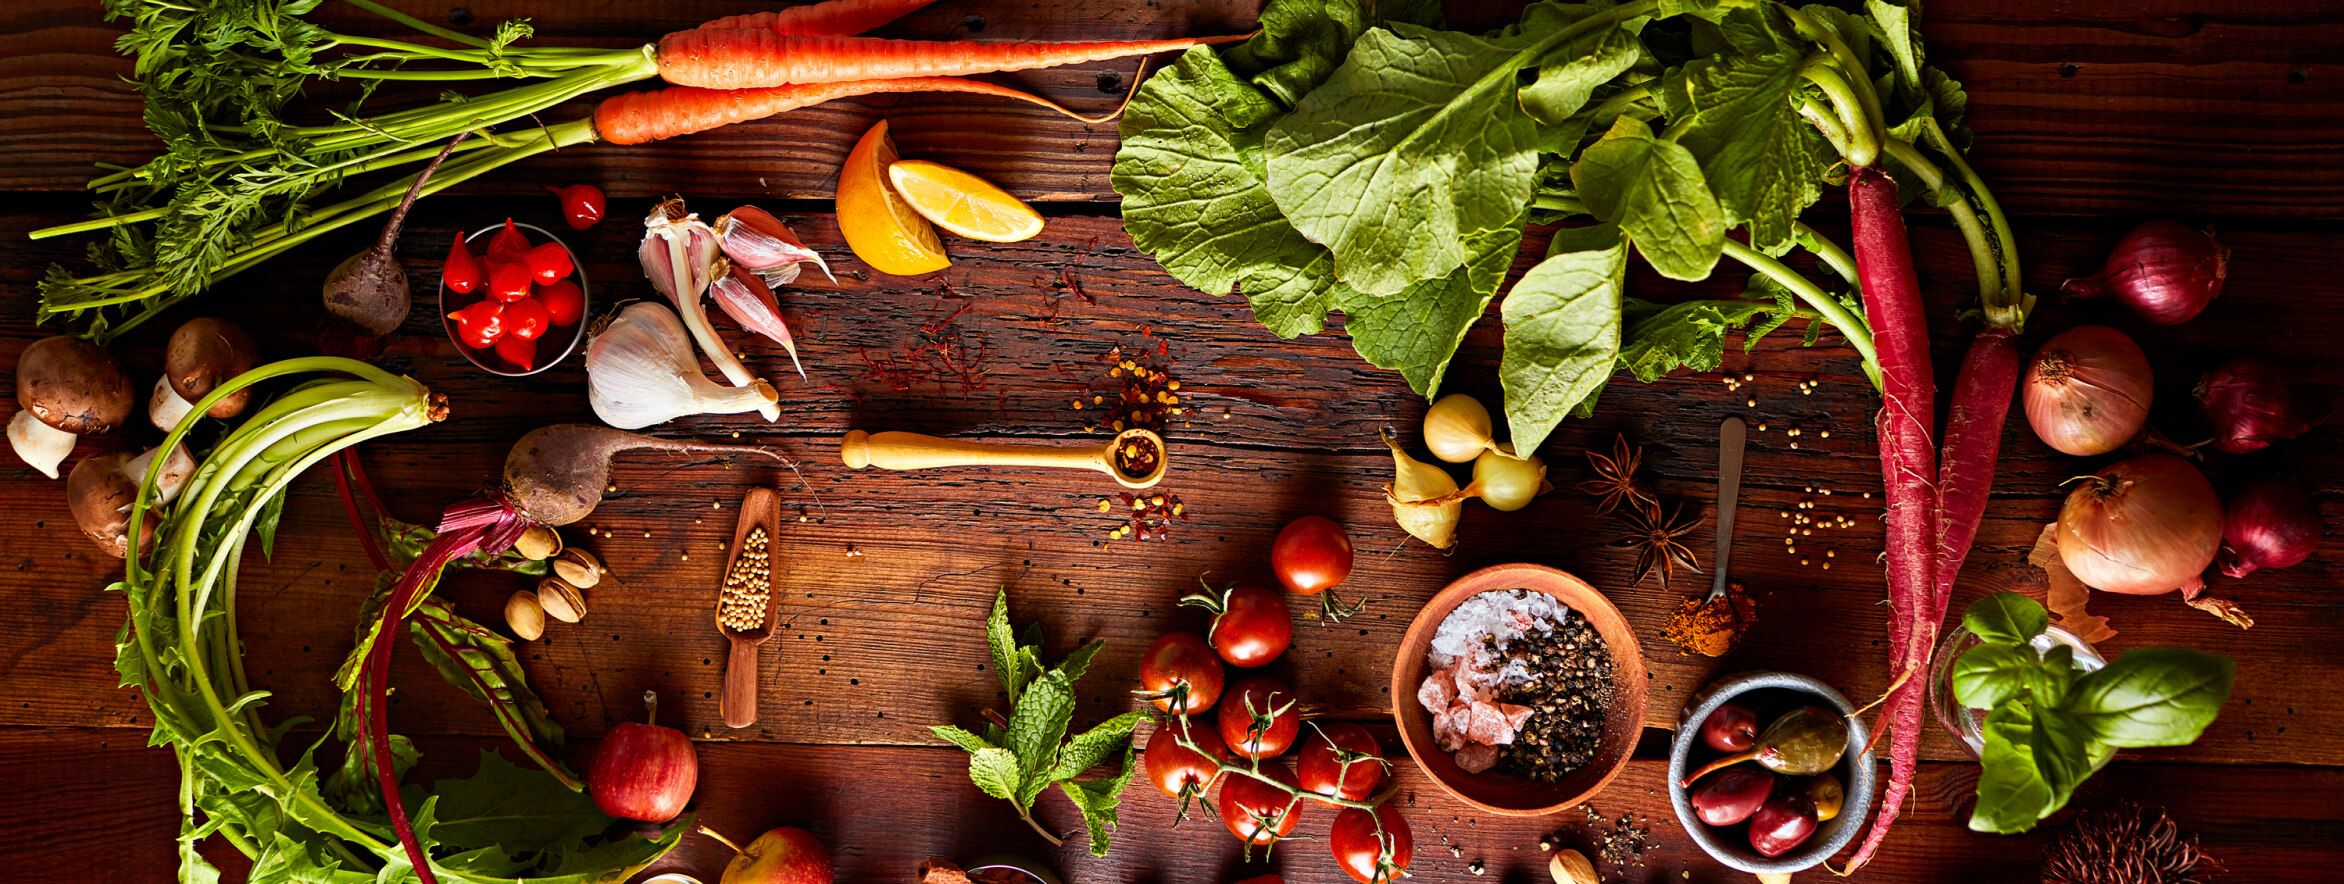 Whole spices, vegetables and fruits arranged on a wood countertop